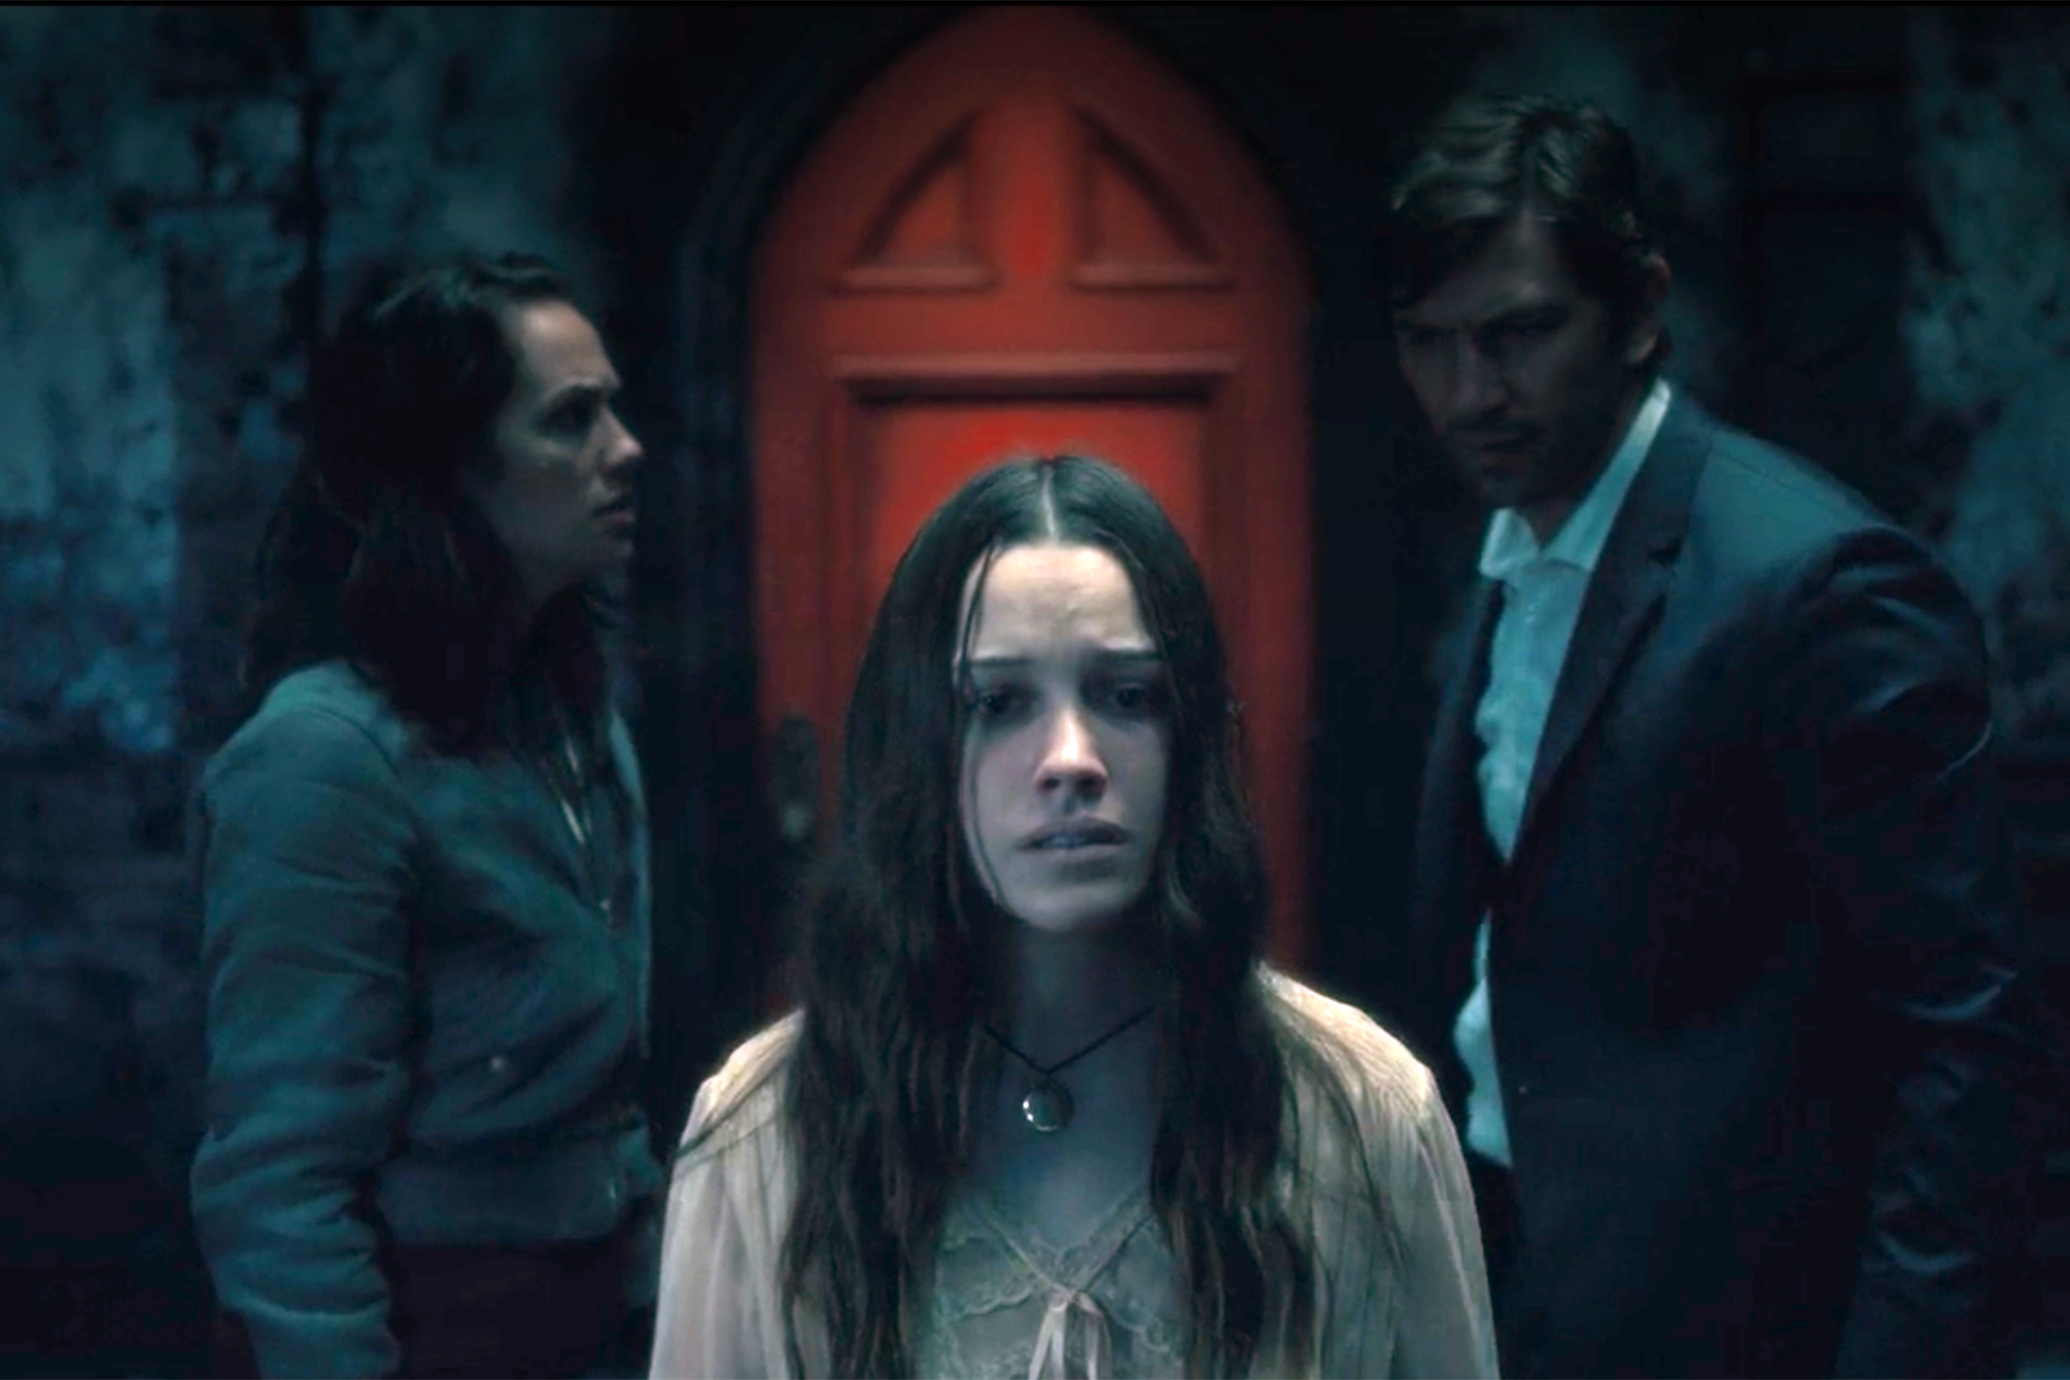 [GIVEAWAY] Enter to Win a Blu-ray Copy of THE HAUNTING OF HILL HOUSE